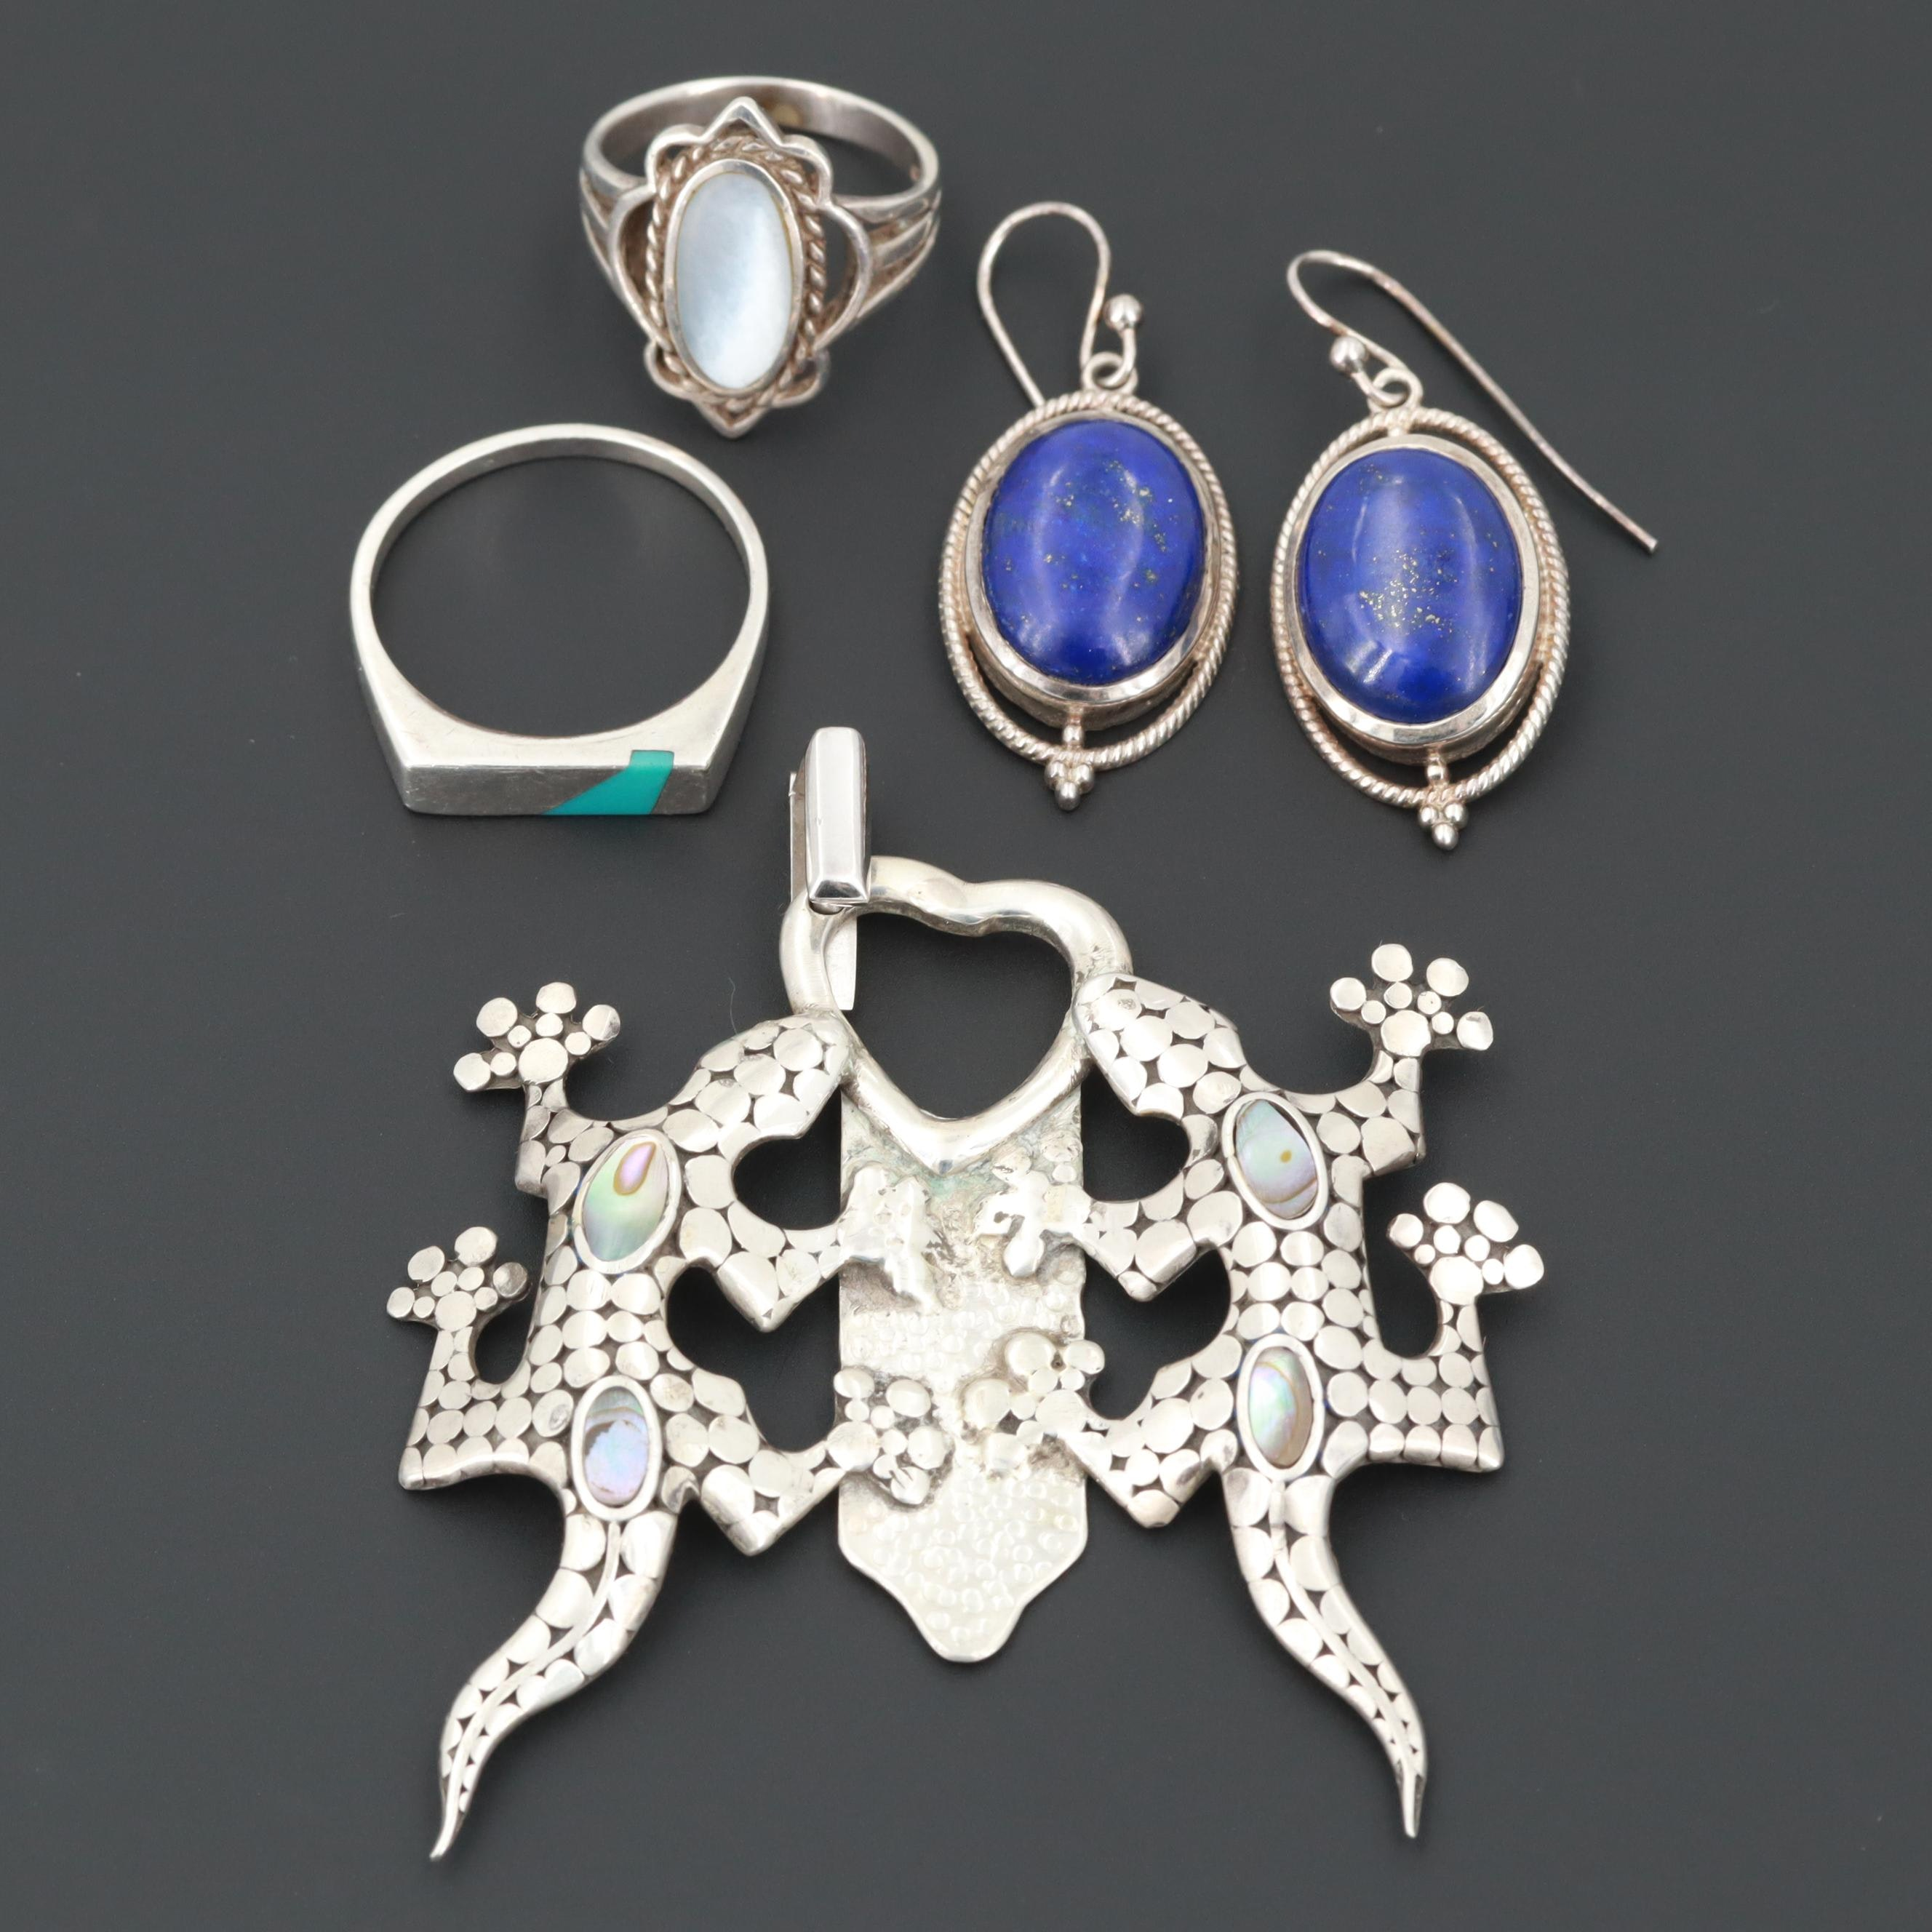 Assorted Sterling Silver Lapis, Shell and Turquoise Earrings, Rings and Pendant